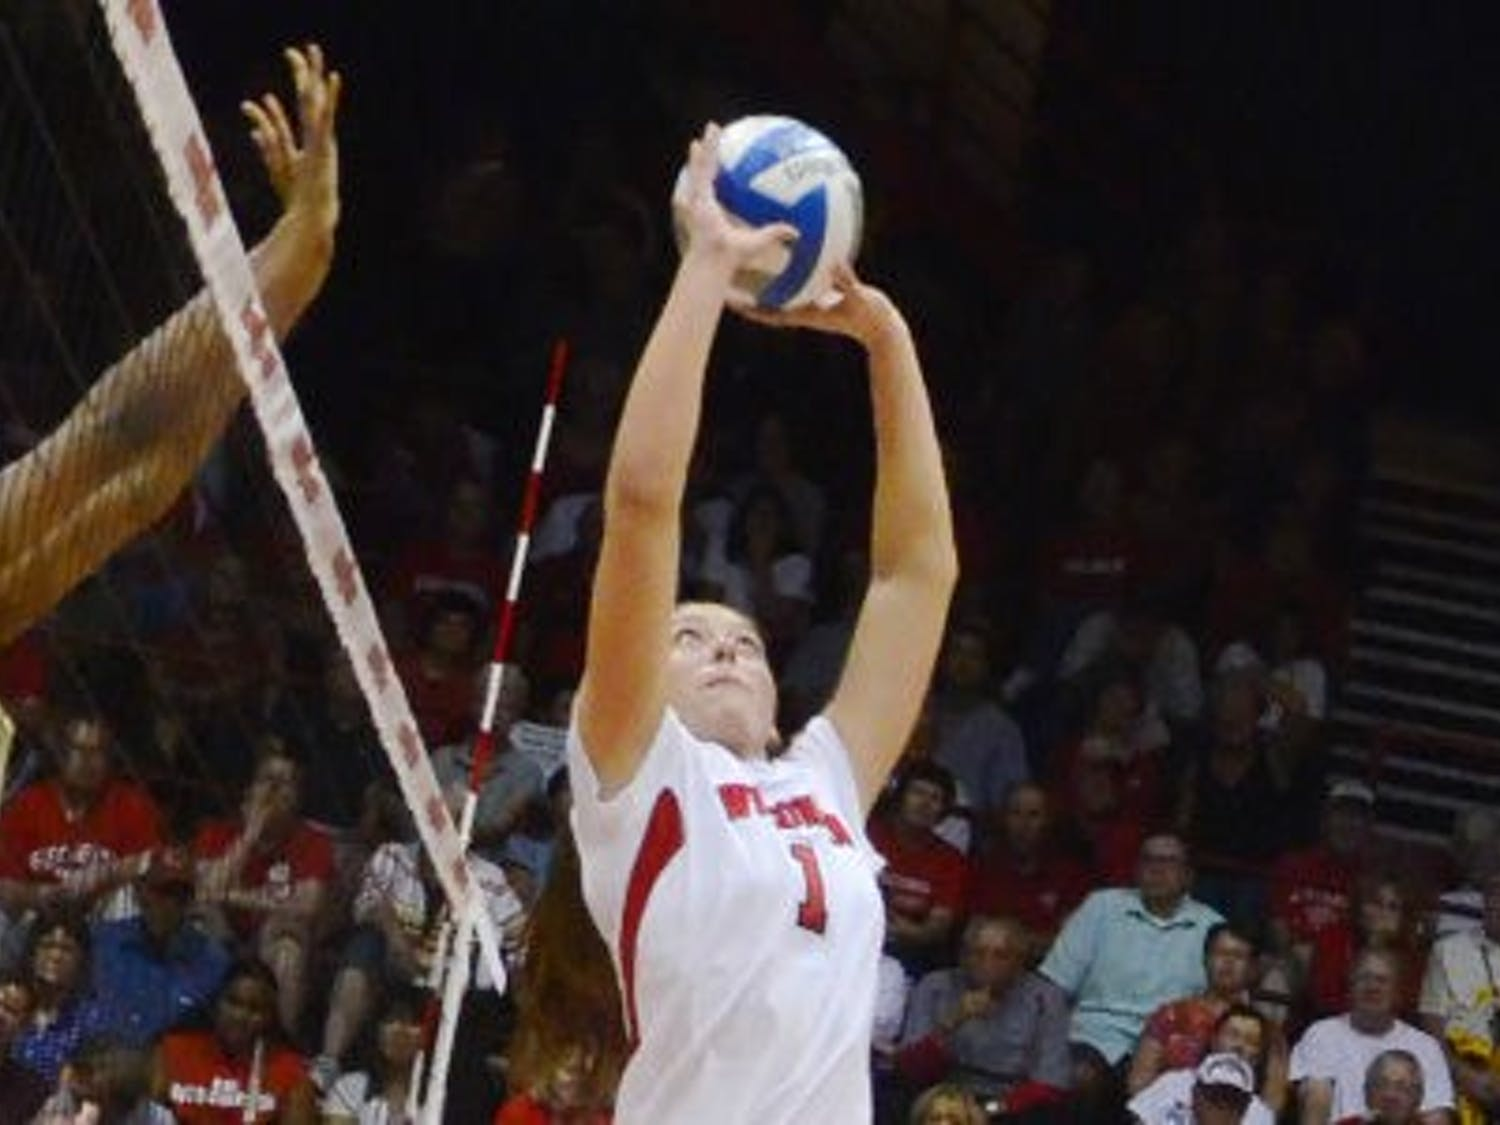 Lauren Carlini helped lead Wisconsin through a dominant weekend, registering 127 assists across three matches.